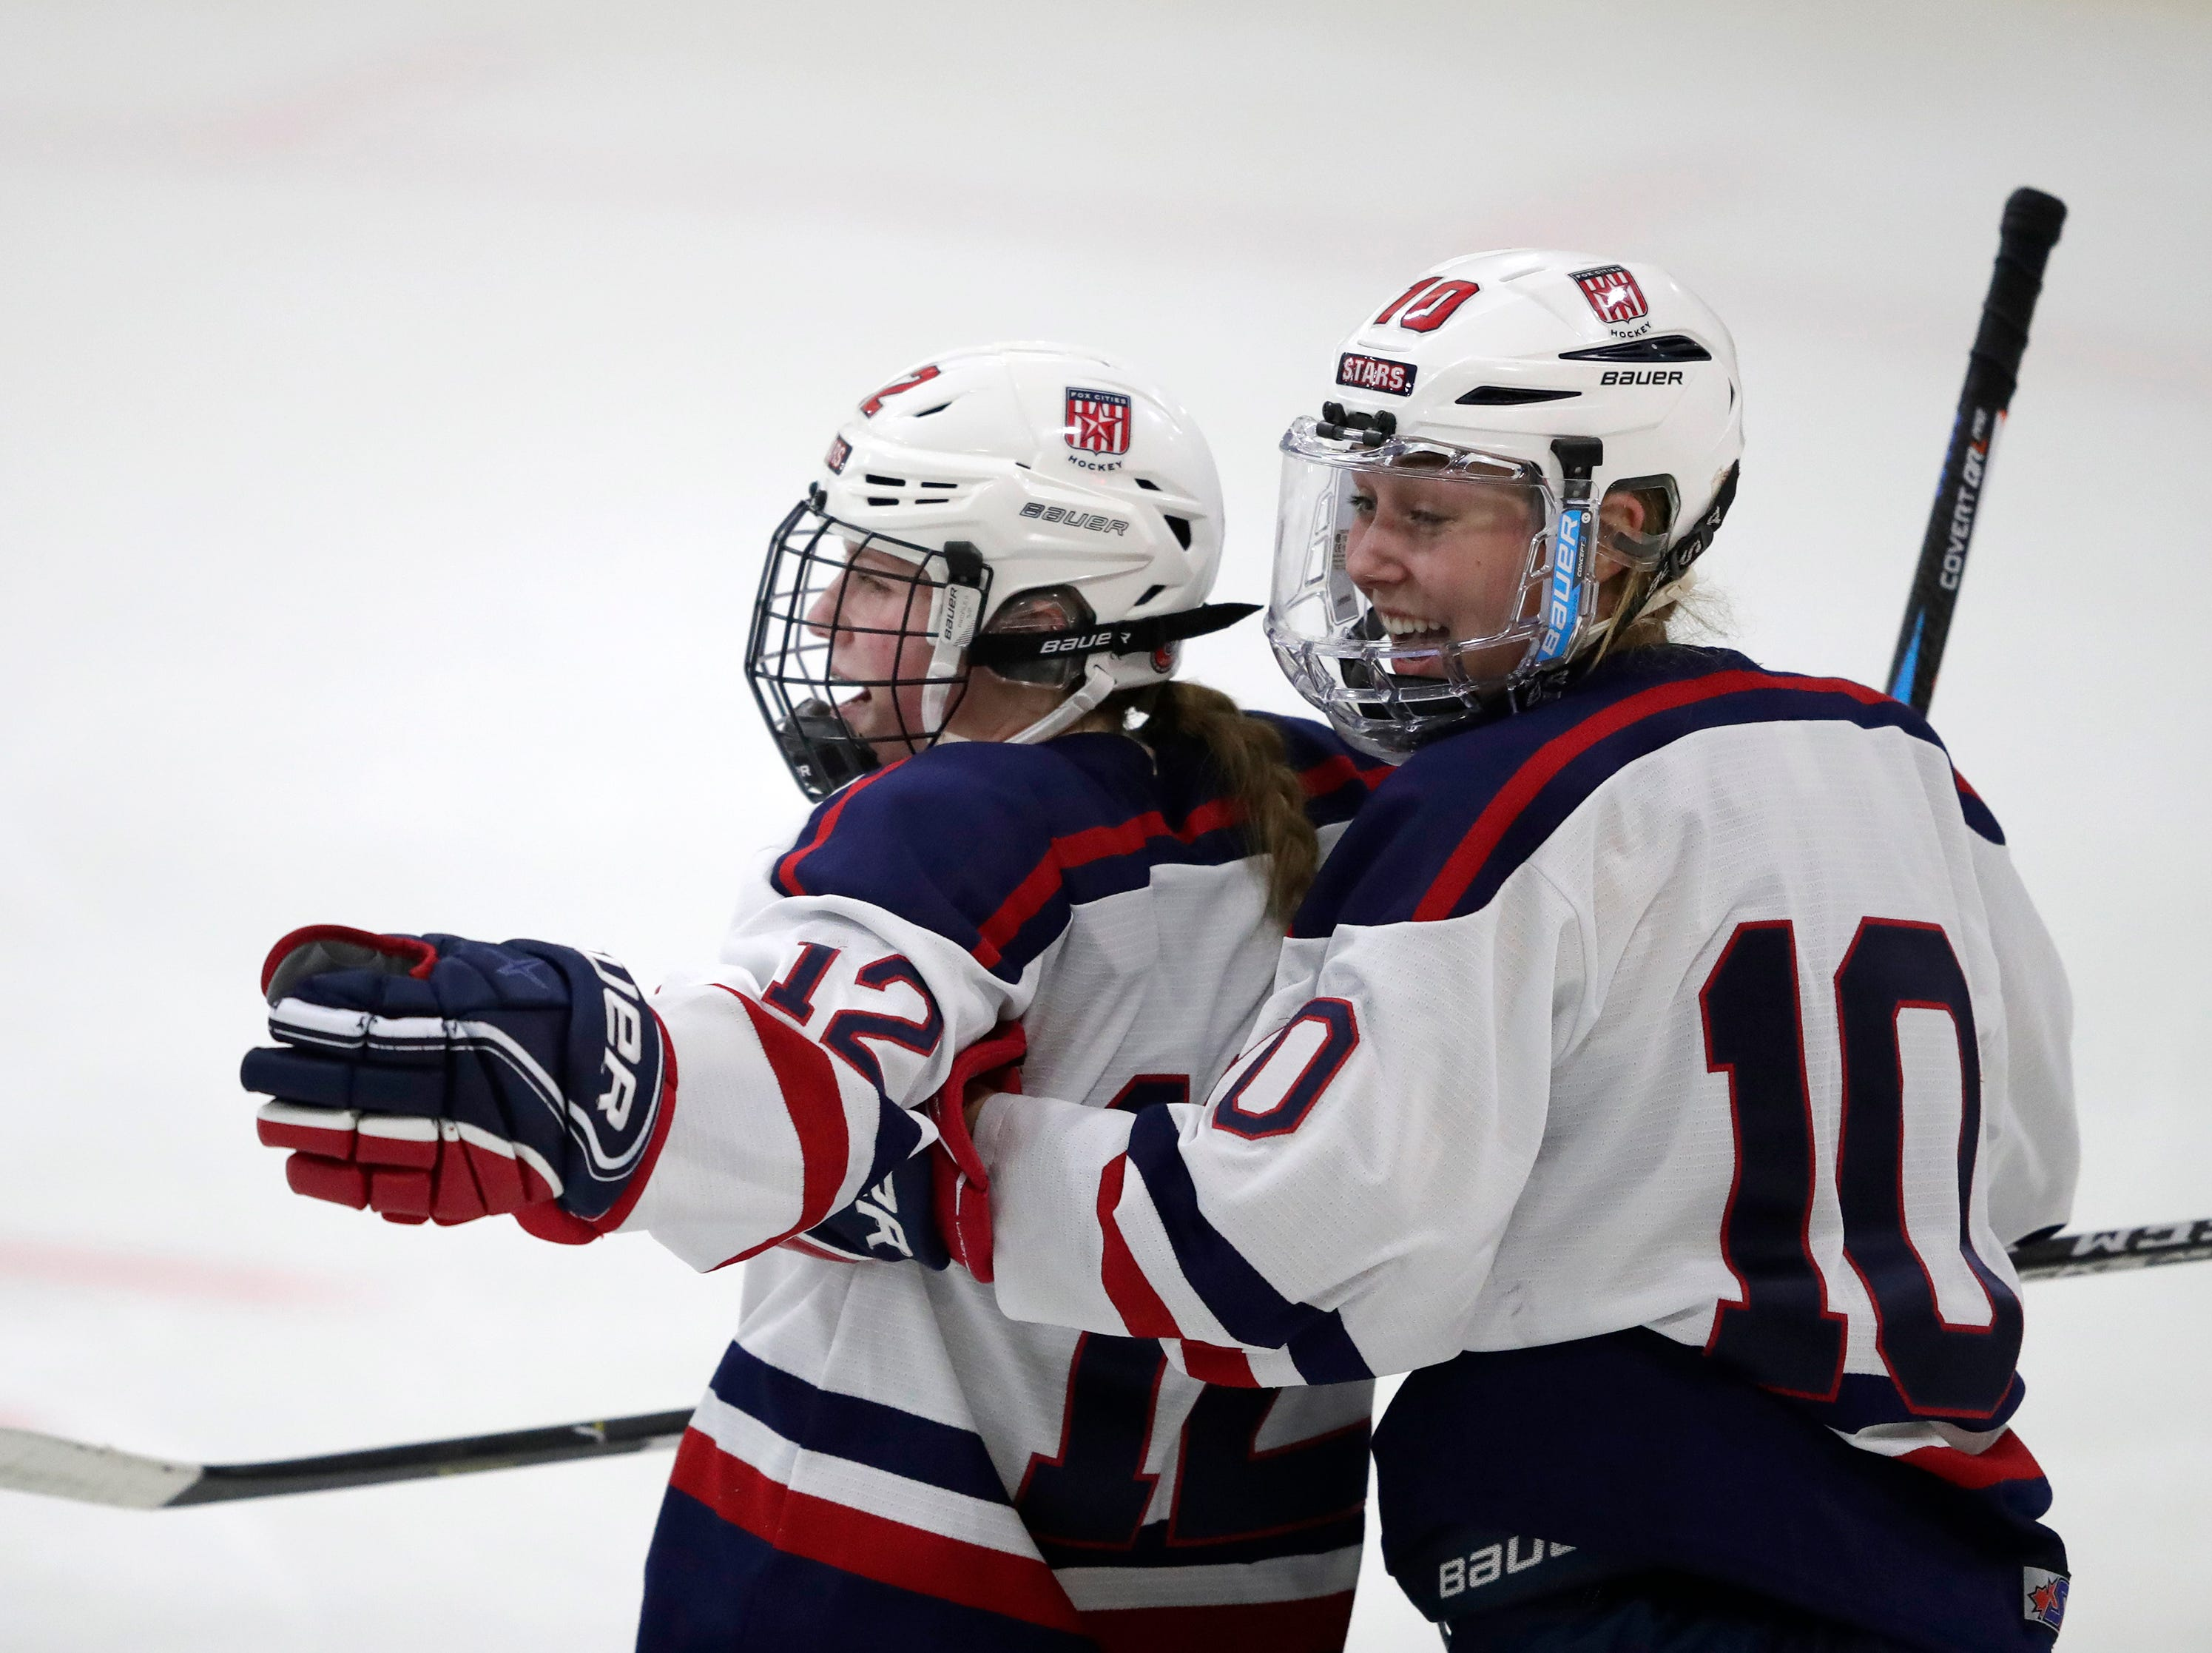 Fox Cities Stars' Annika Horman (12) celebrates scoring a goal with teammate Madelynn Jablonski (10) against the Warbirds during their girls hockey game Thursday, January 10, 2019, at Tri-County Ice Arena in Fox Crossing, Wis. 